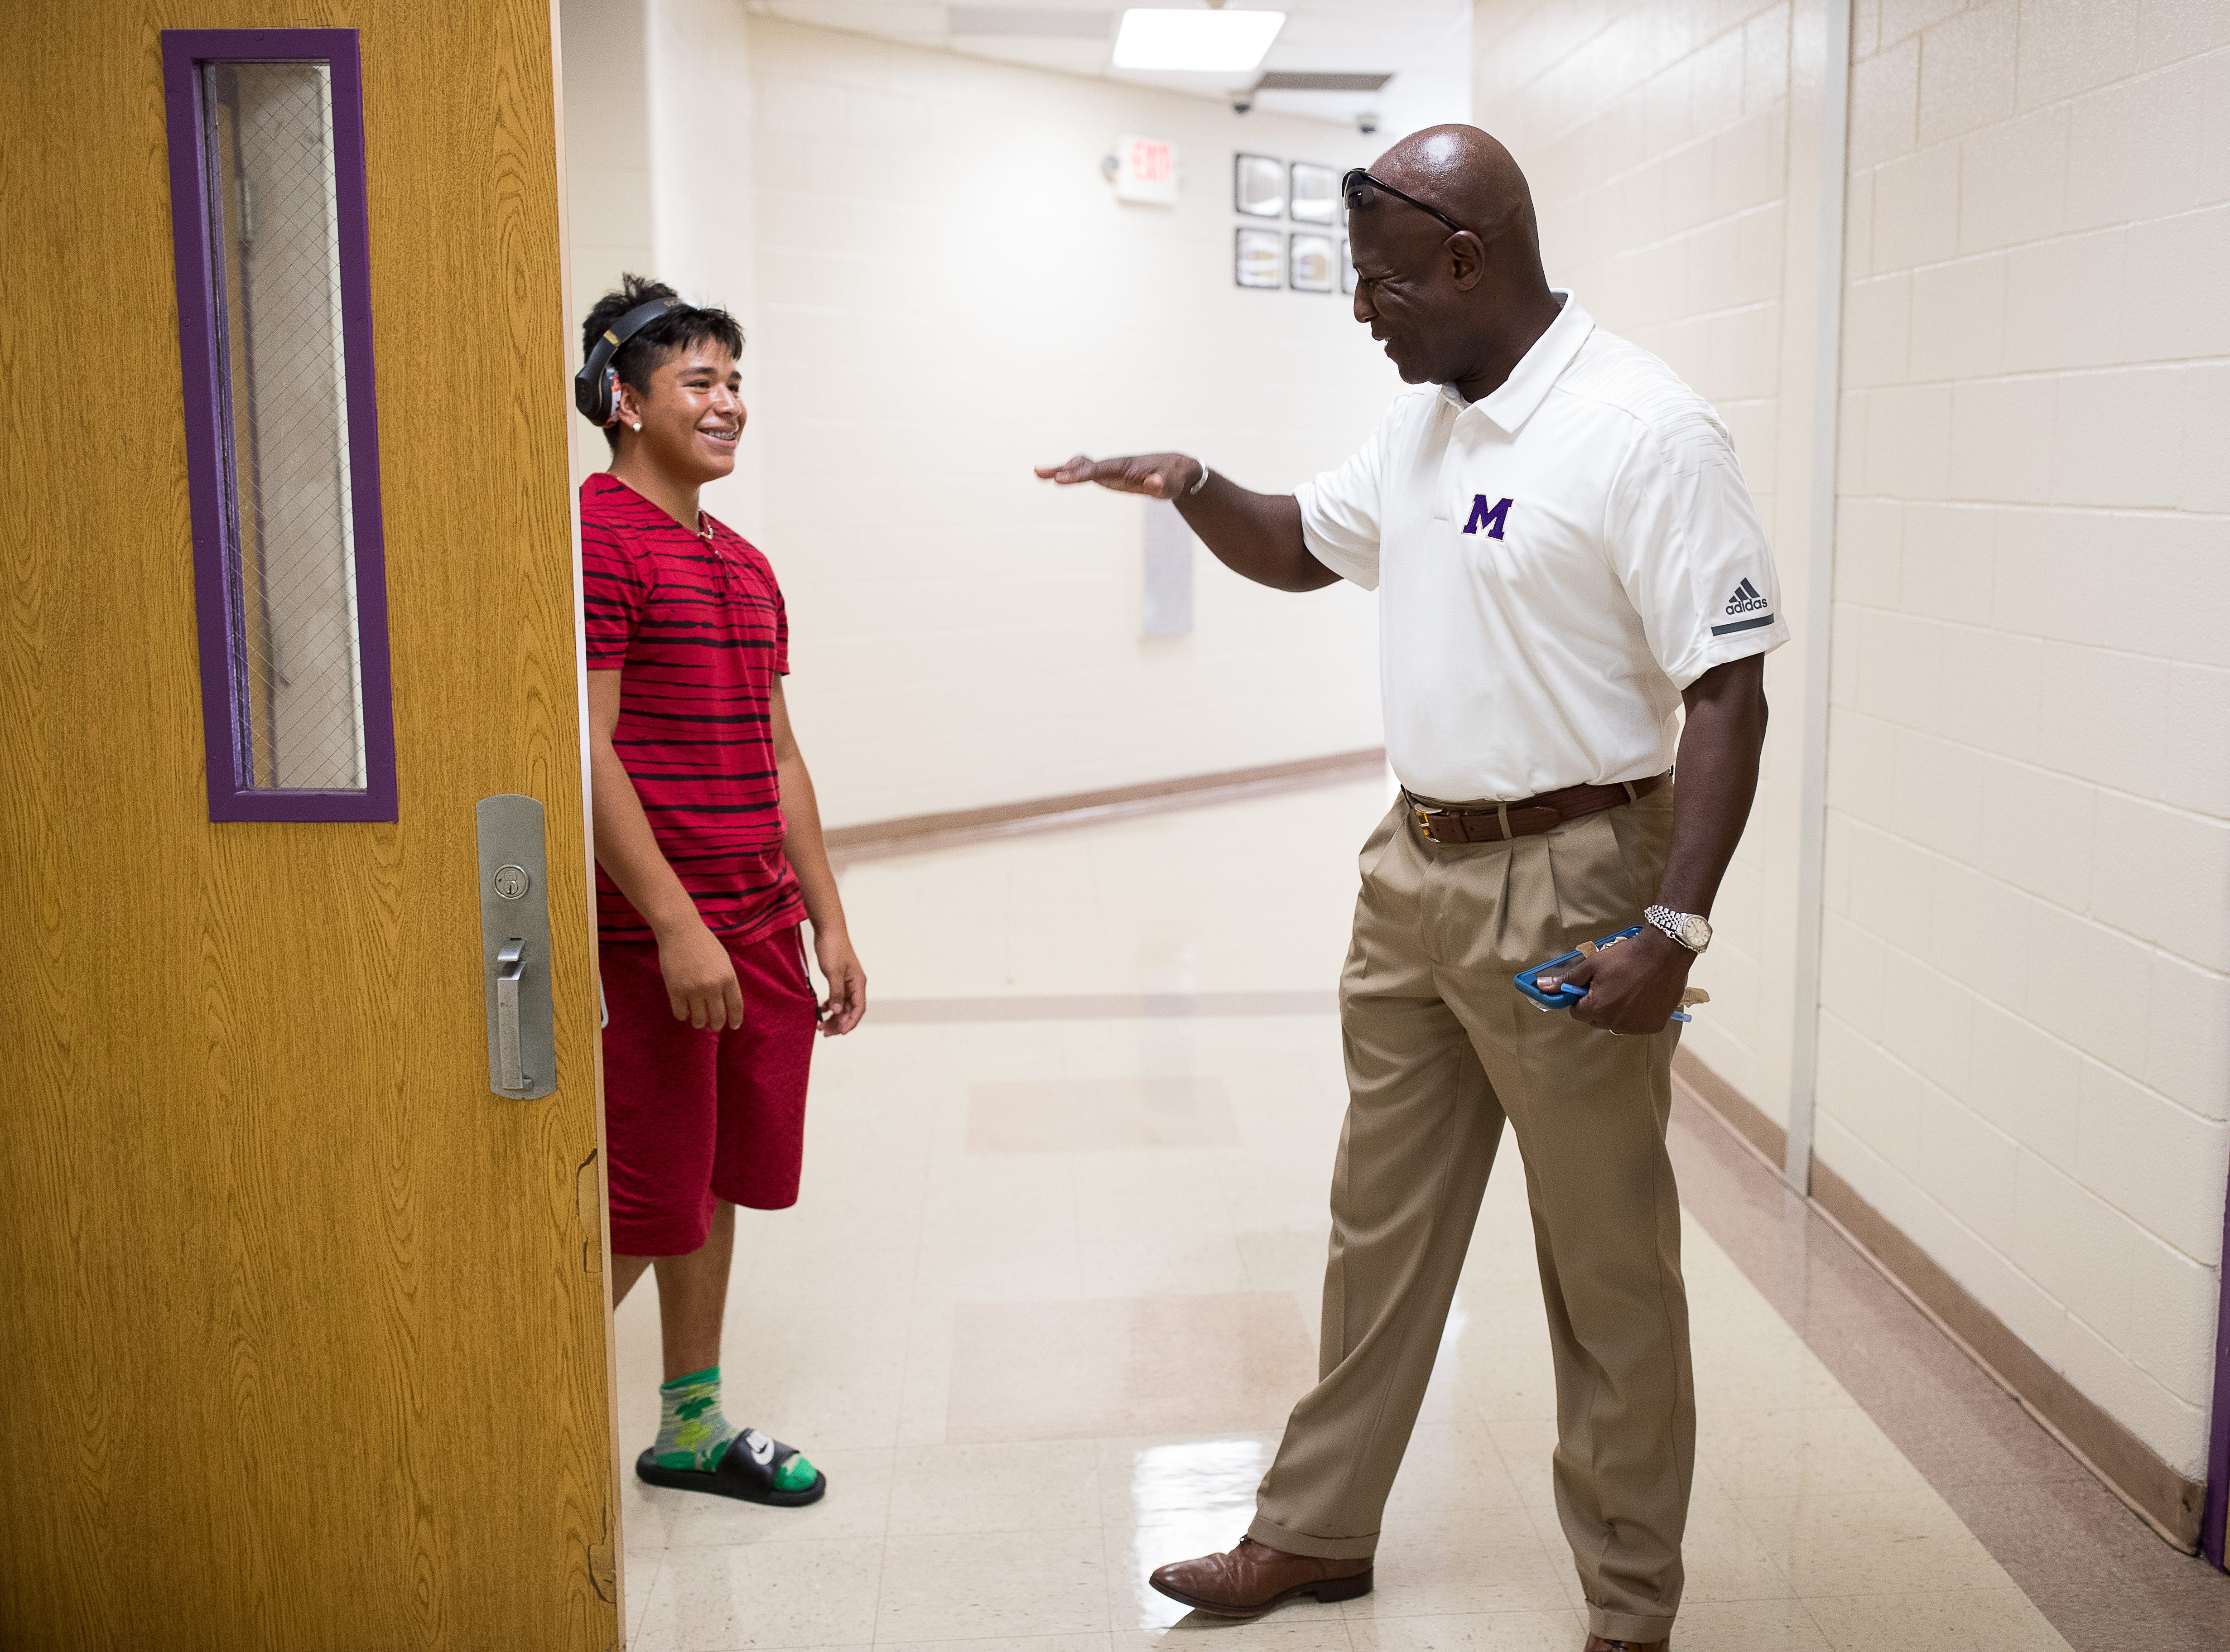 Miller High school's new principal Bruce Wilson talks to a student in the hallway on his way to a meeting before the start of the new school year on Thursday, Aug. 9, 2018.